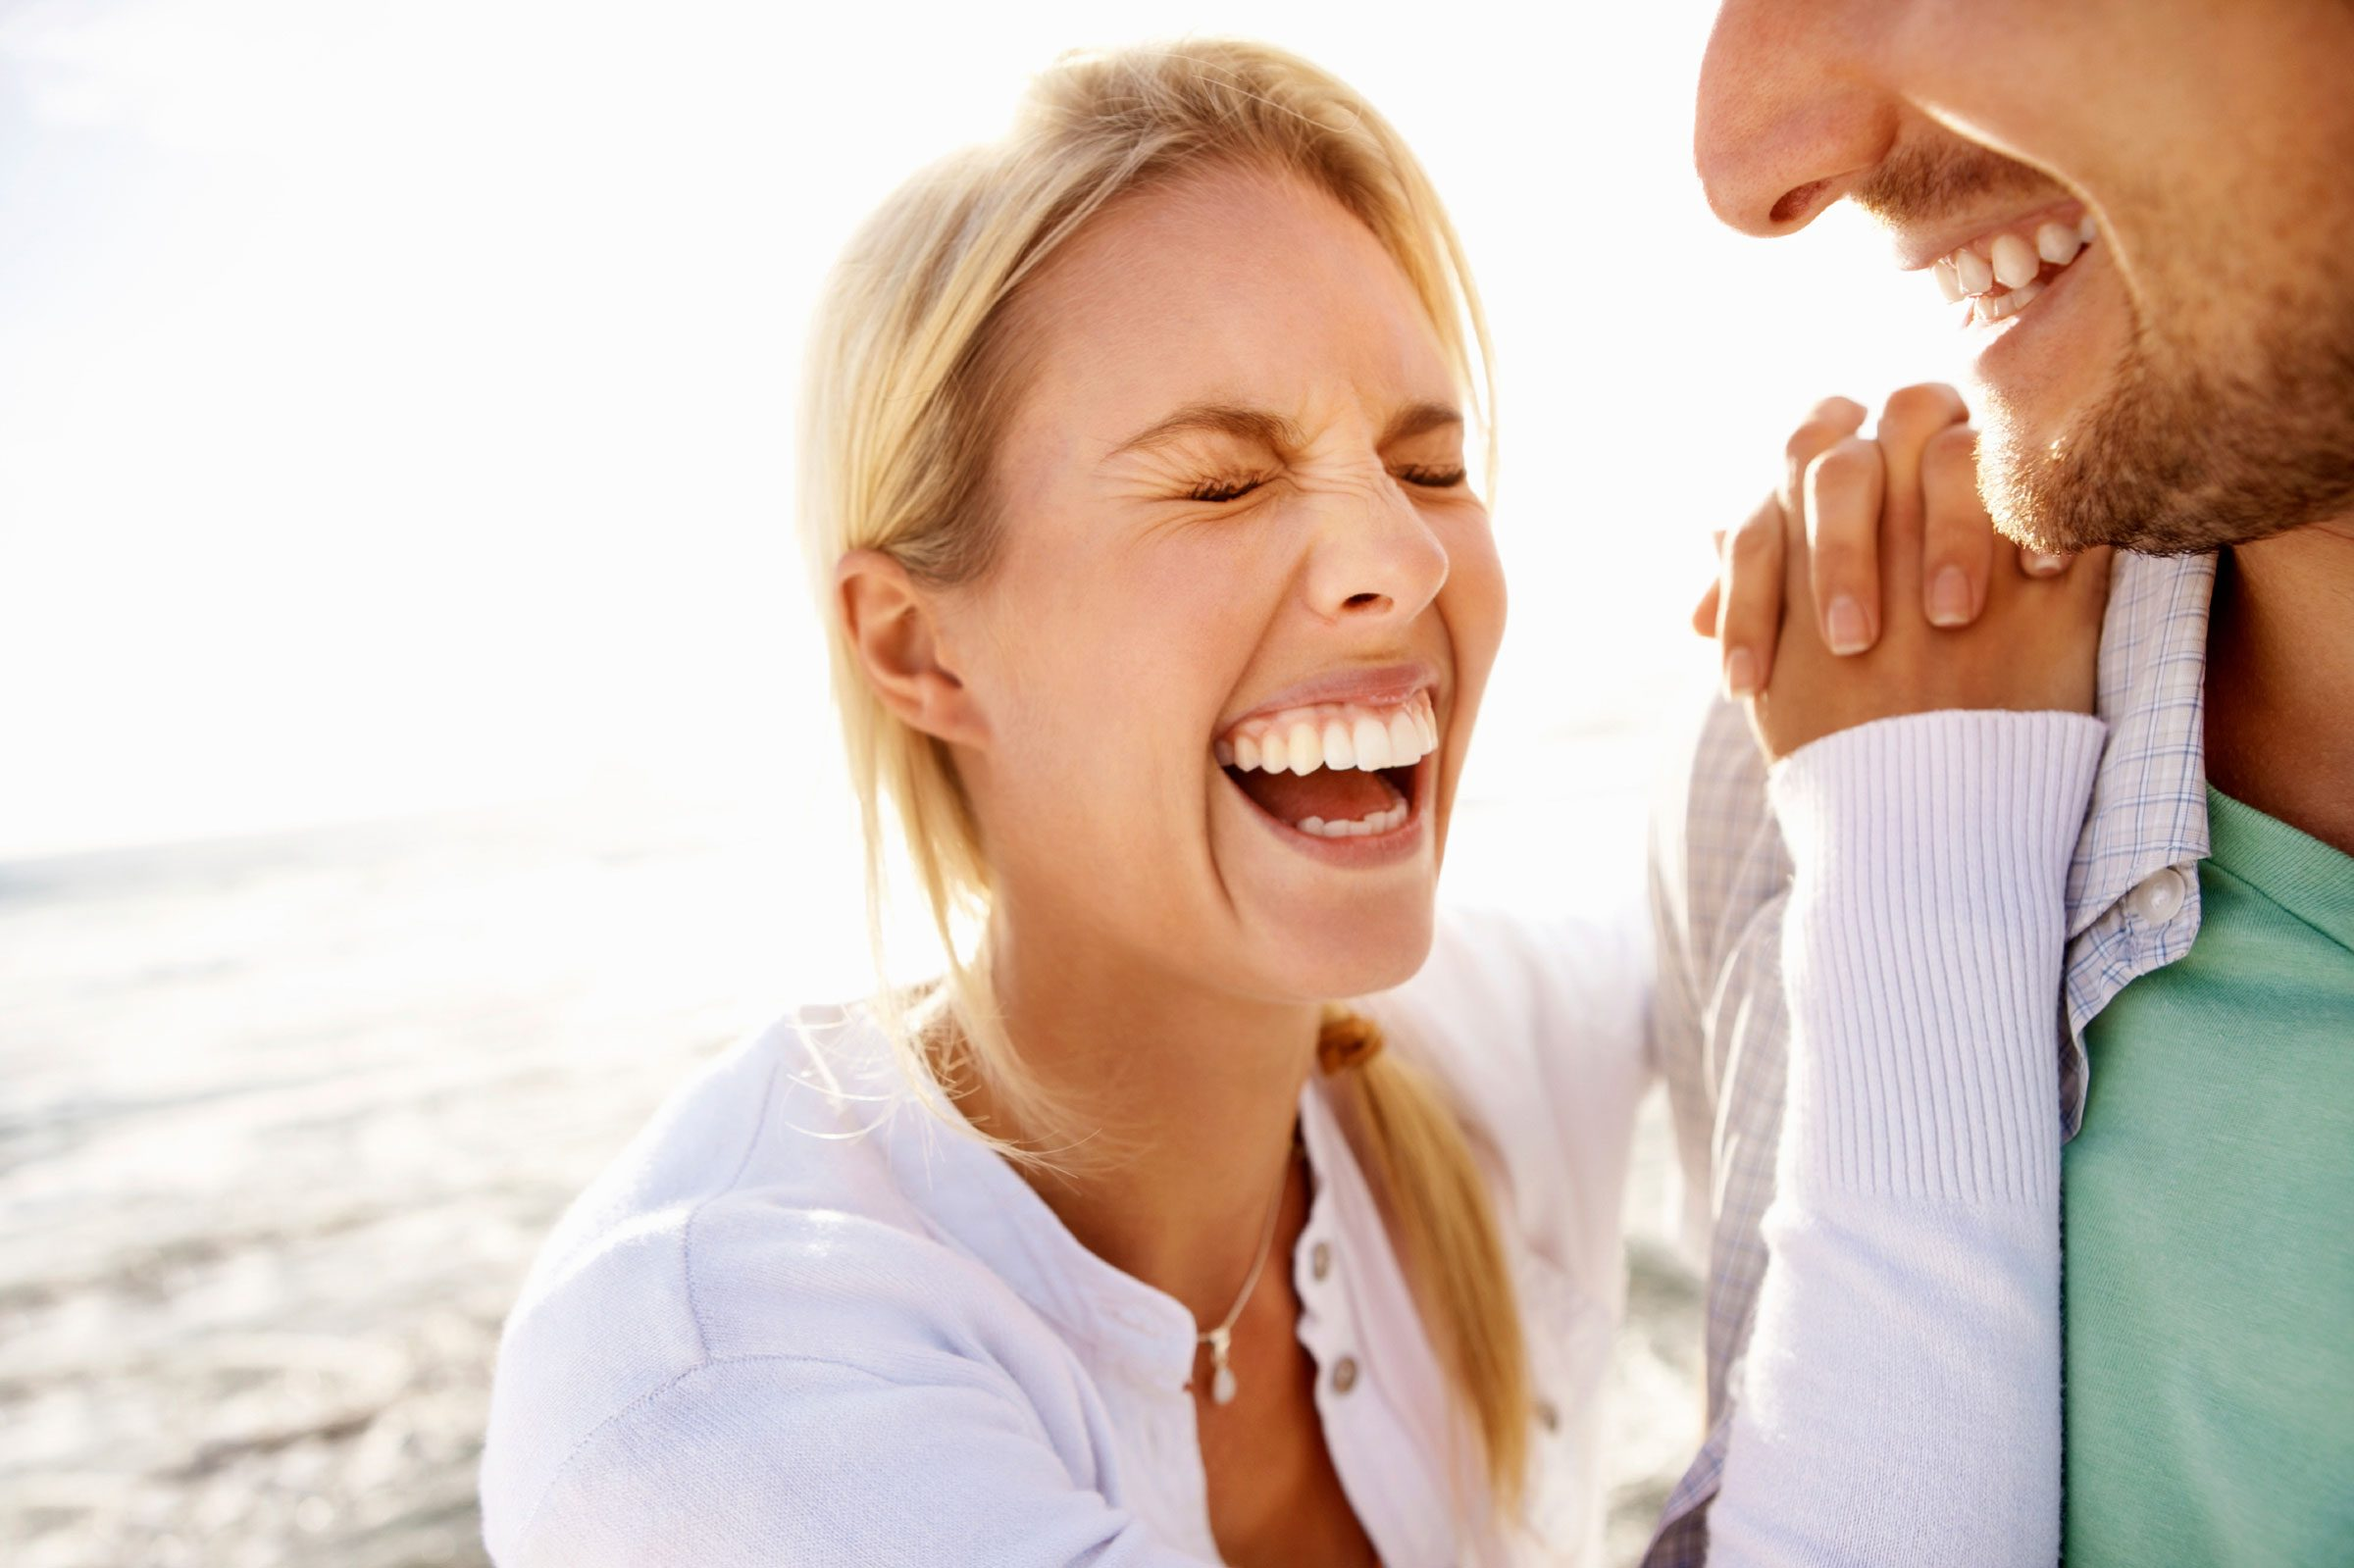 Laughing burns more calories than you may think